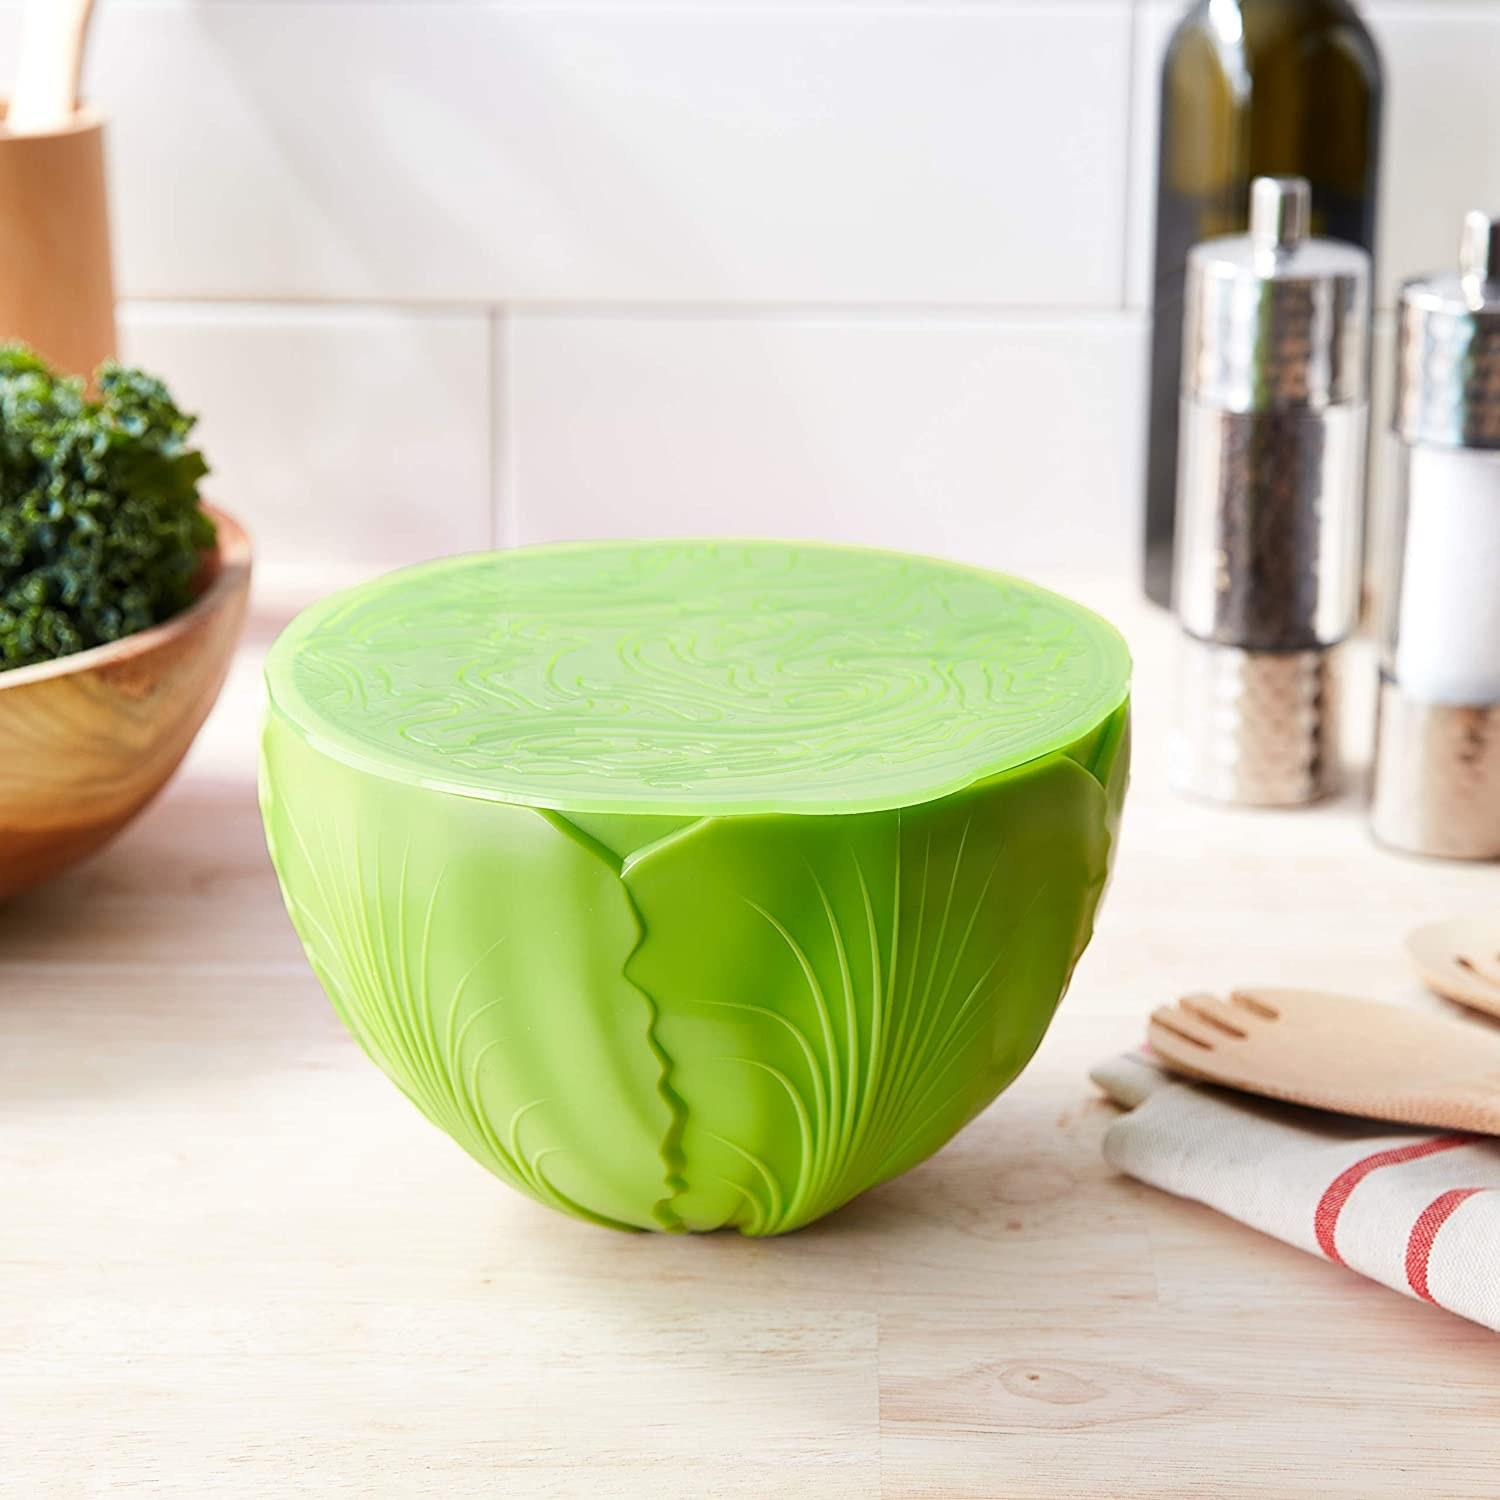 The salad saver on a kitchen counter